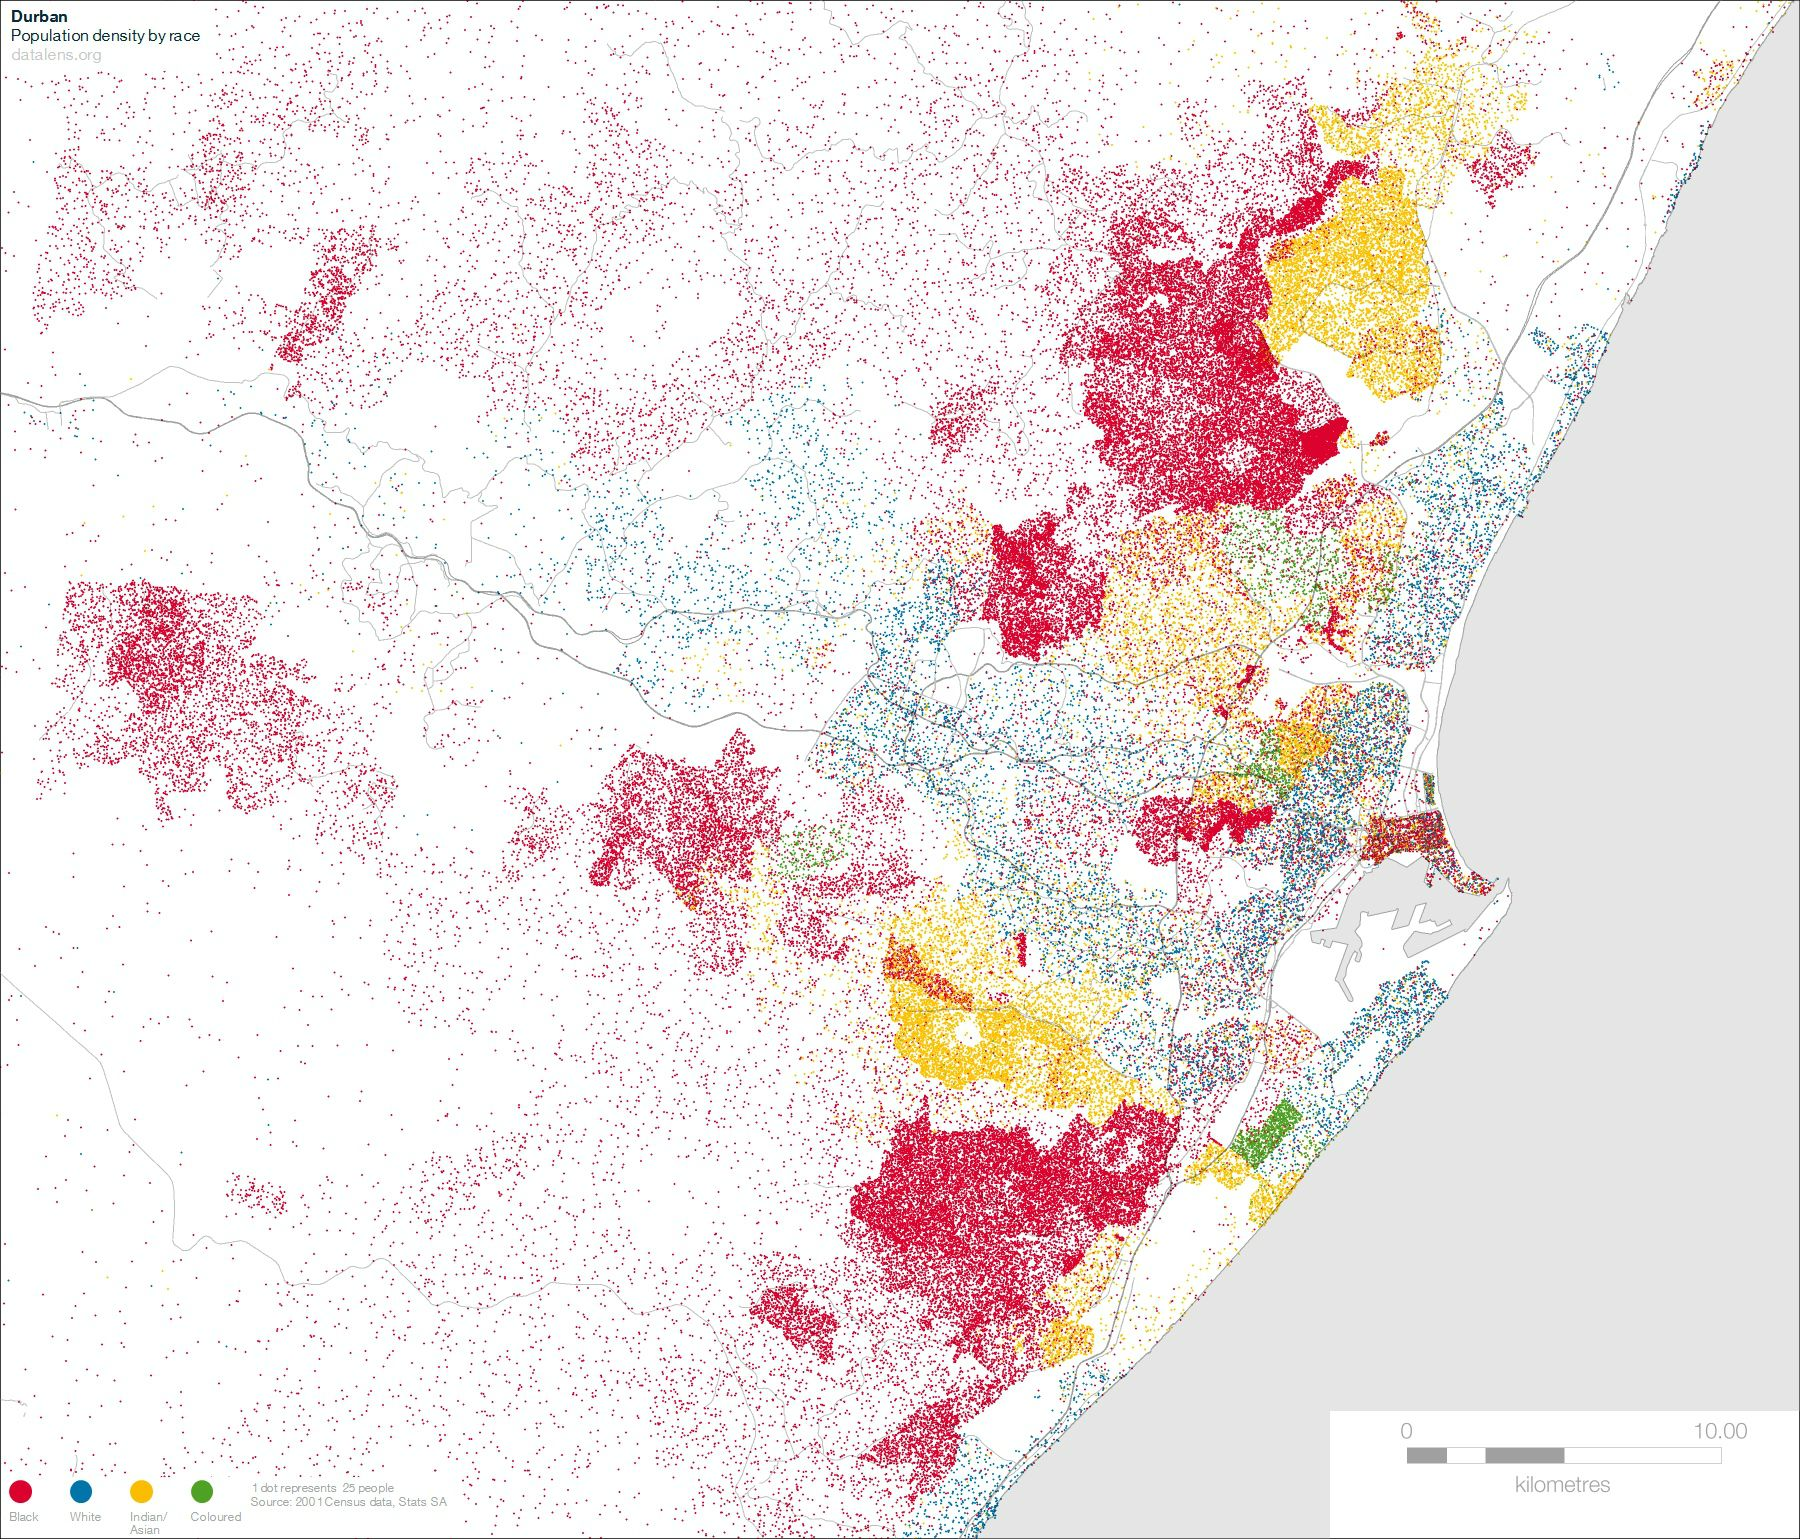 Map Durban - Potion Density by race | South African History Online on